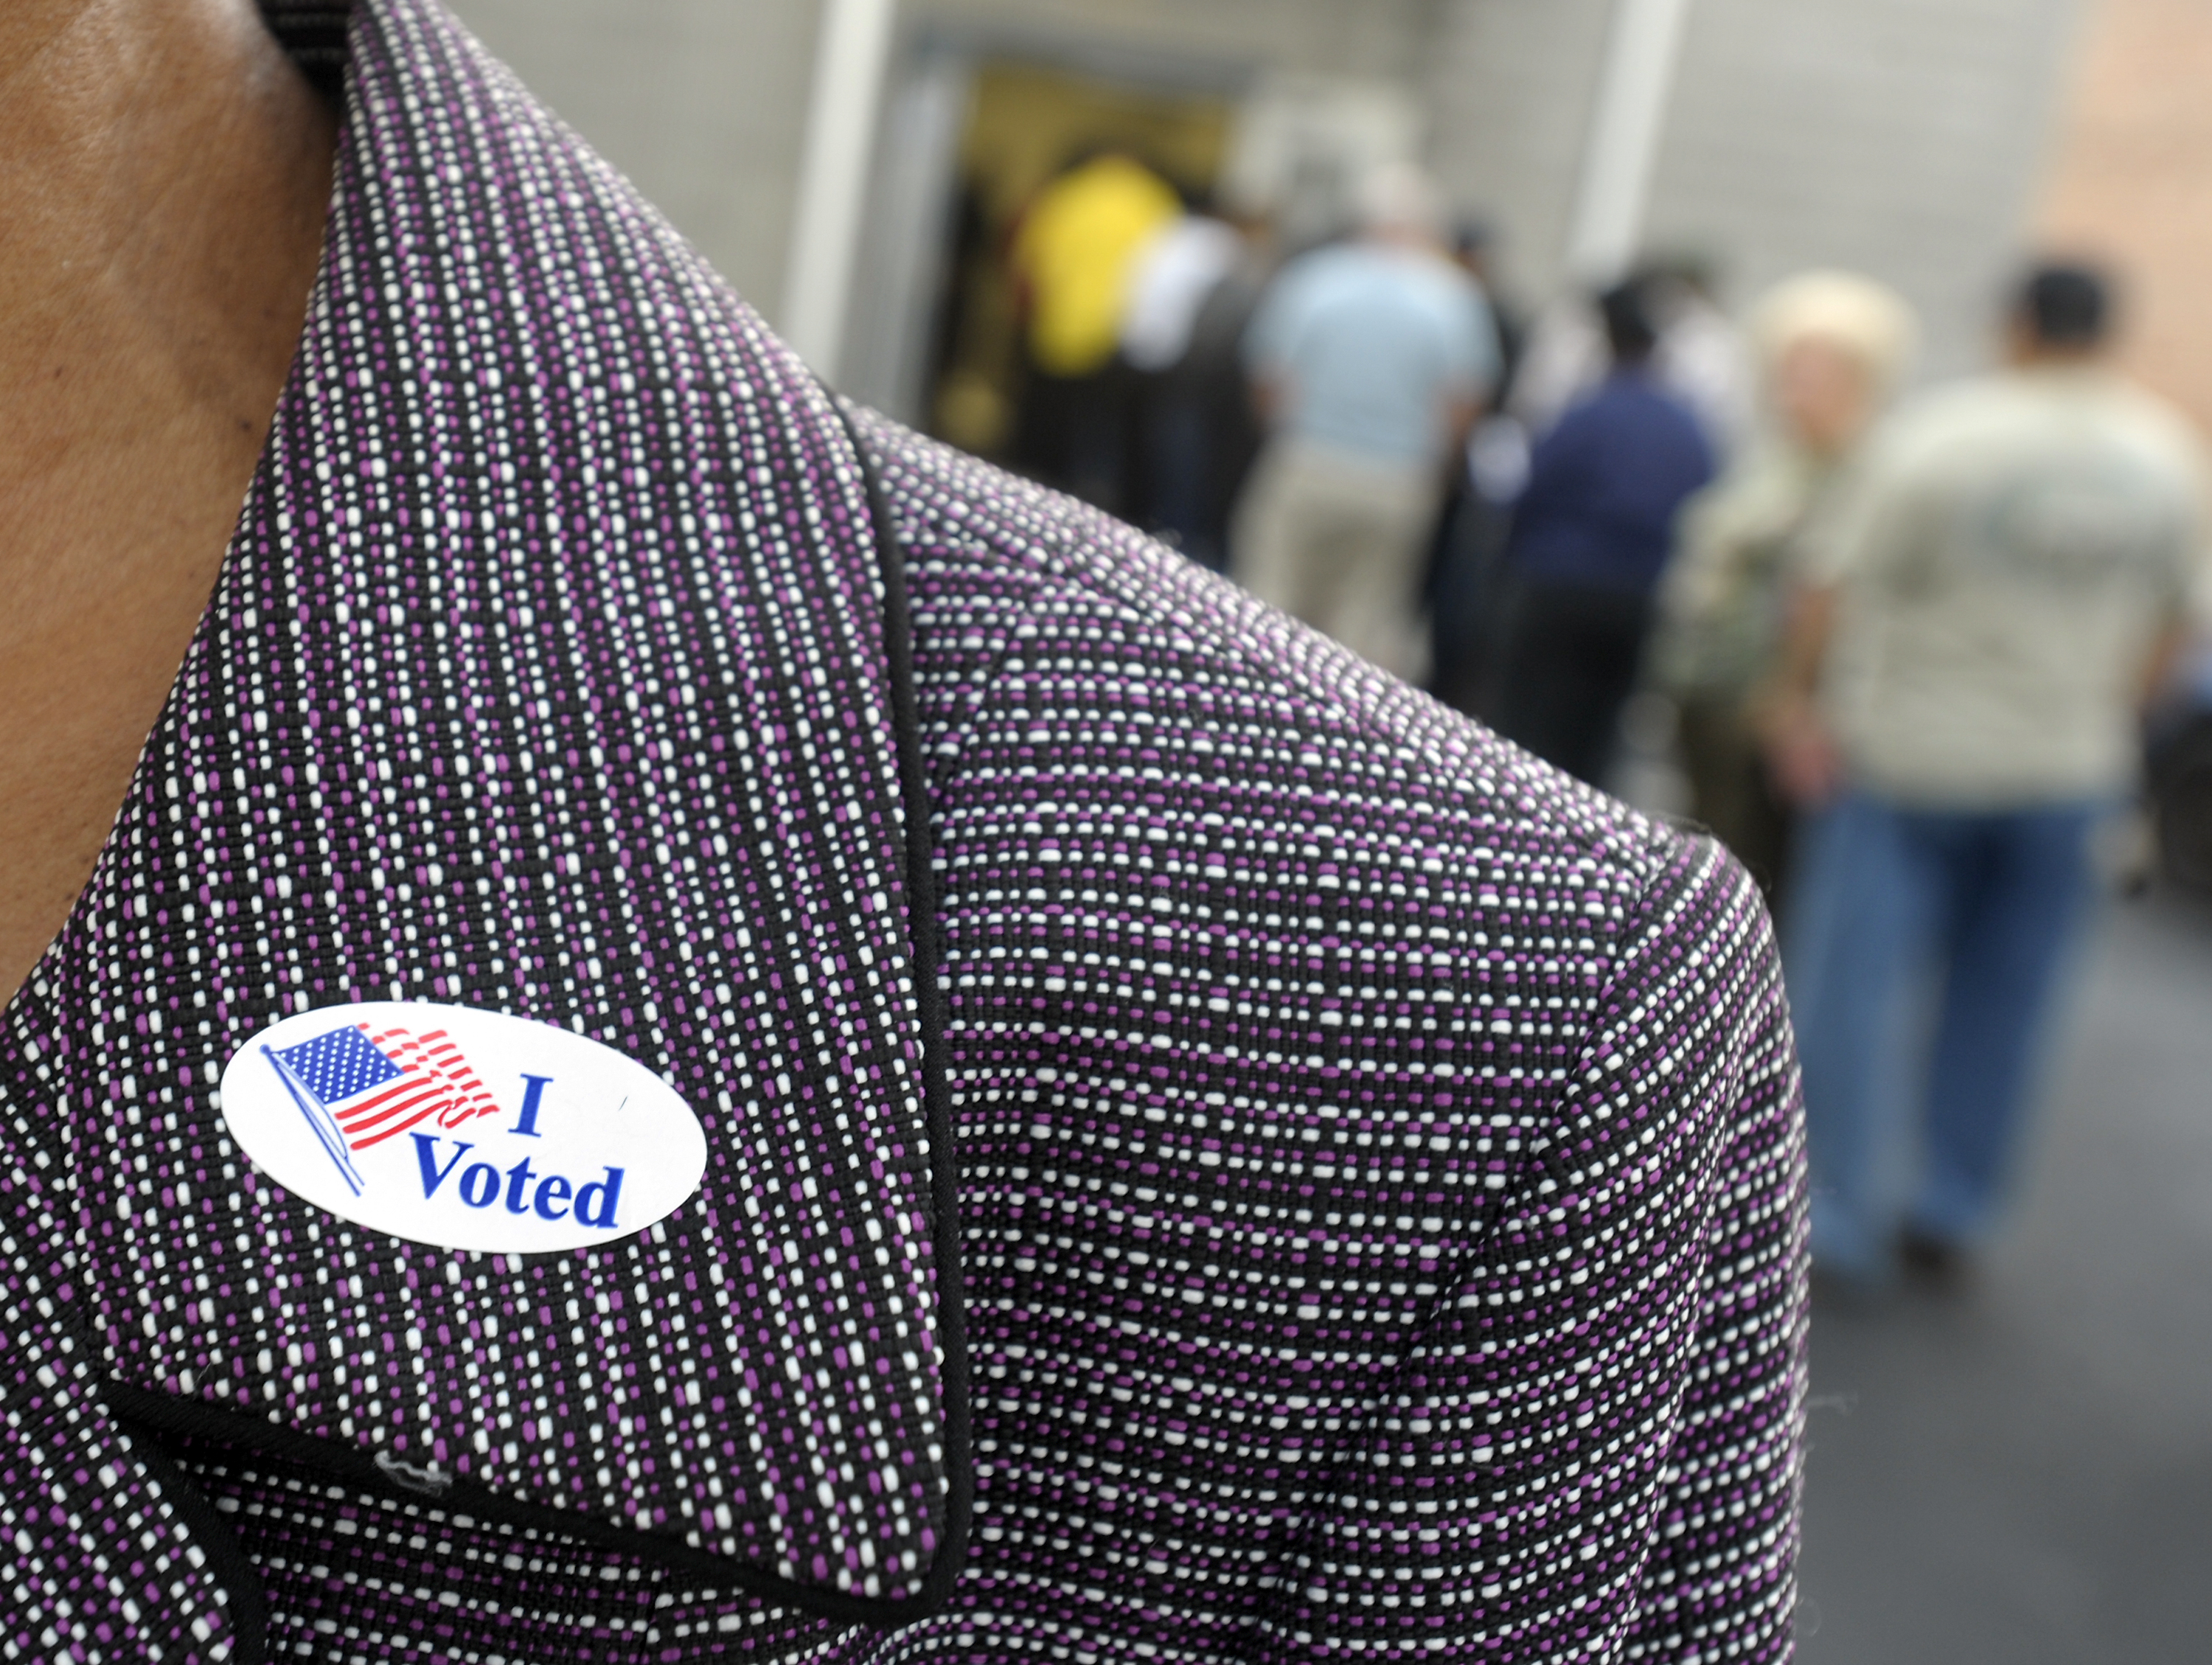 A voter displays an  I Voted  sticker on her lapel after voting as others wait in line for the first day of early voting on Oct. 18, 2012, in Wilson, N.C.